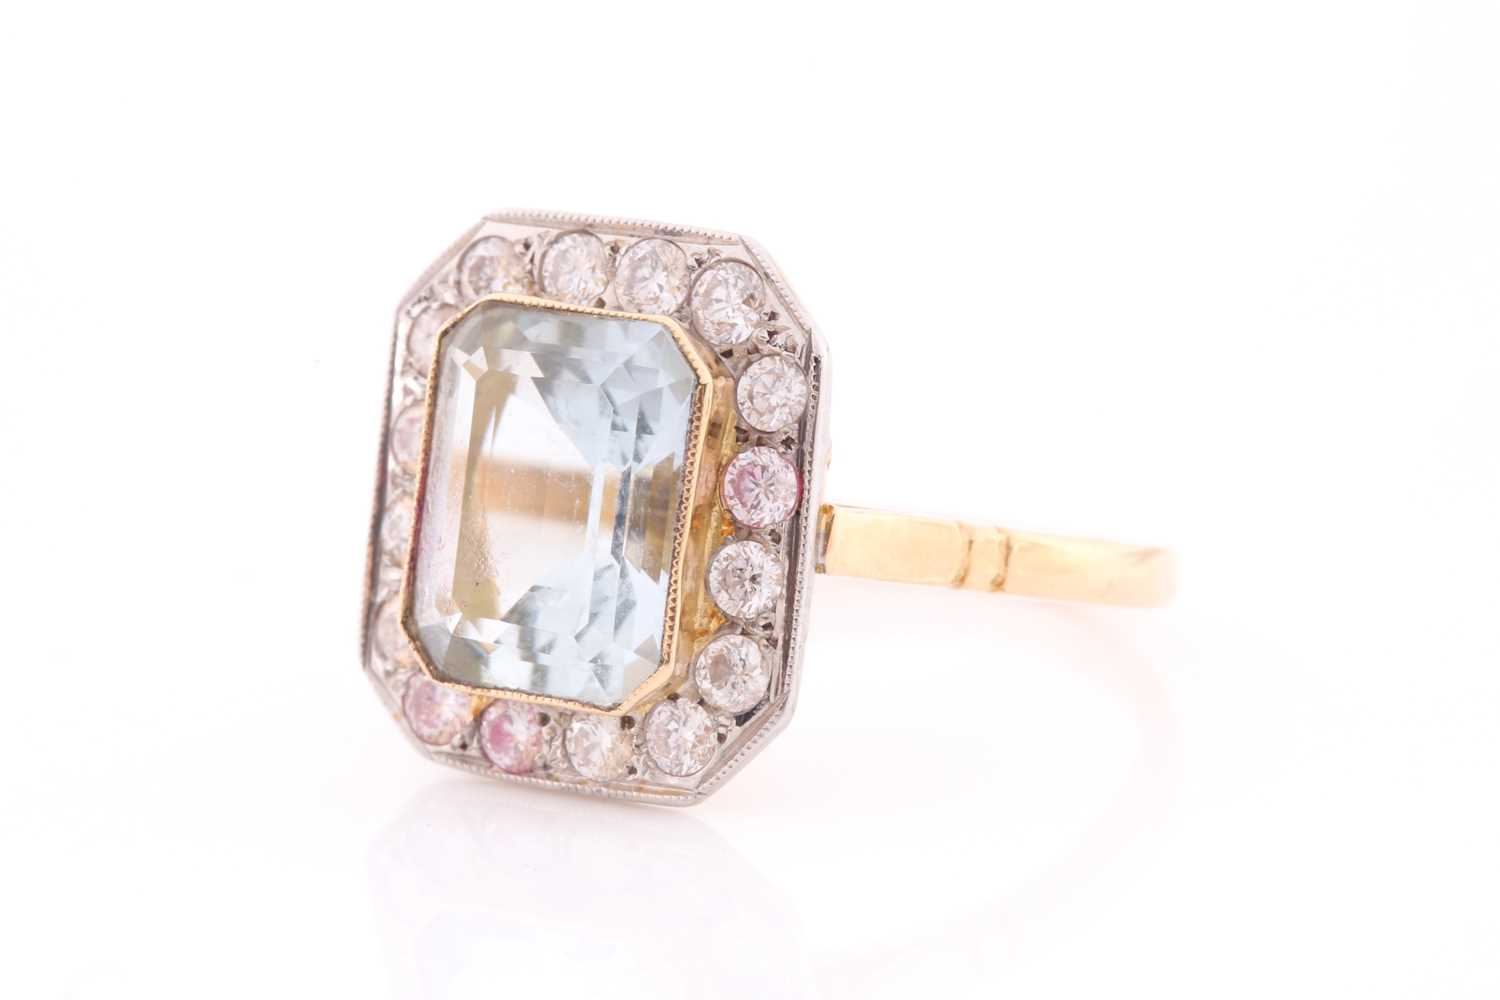 A diamond and aquamarine ring, set with an emerald-cut aquamarine of approximately 2.30 carats, - Image 4 of 4